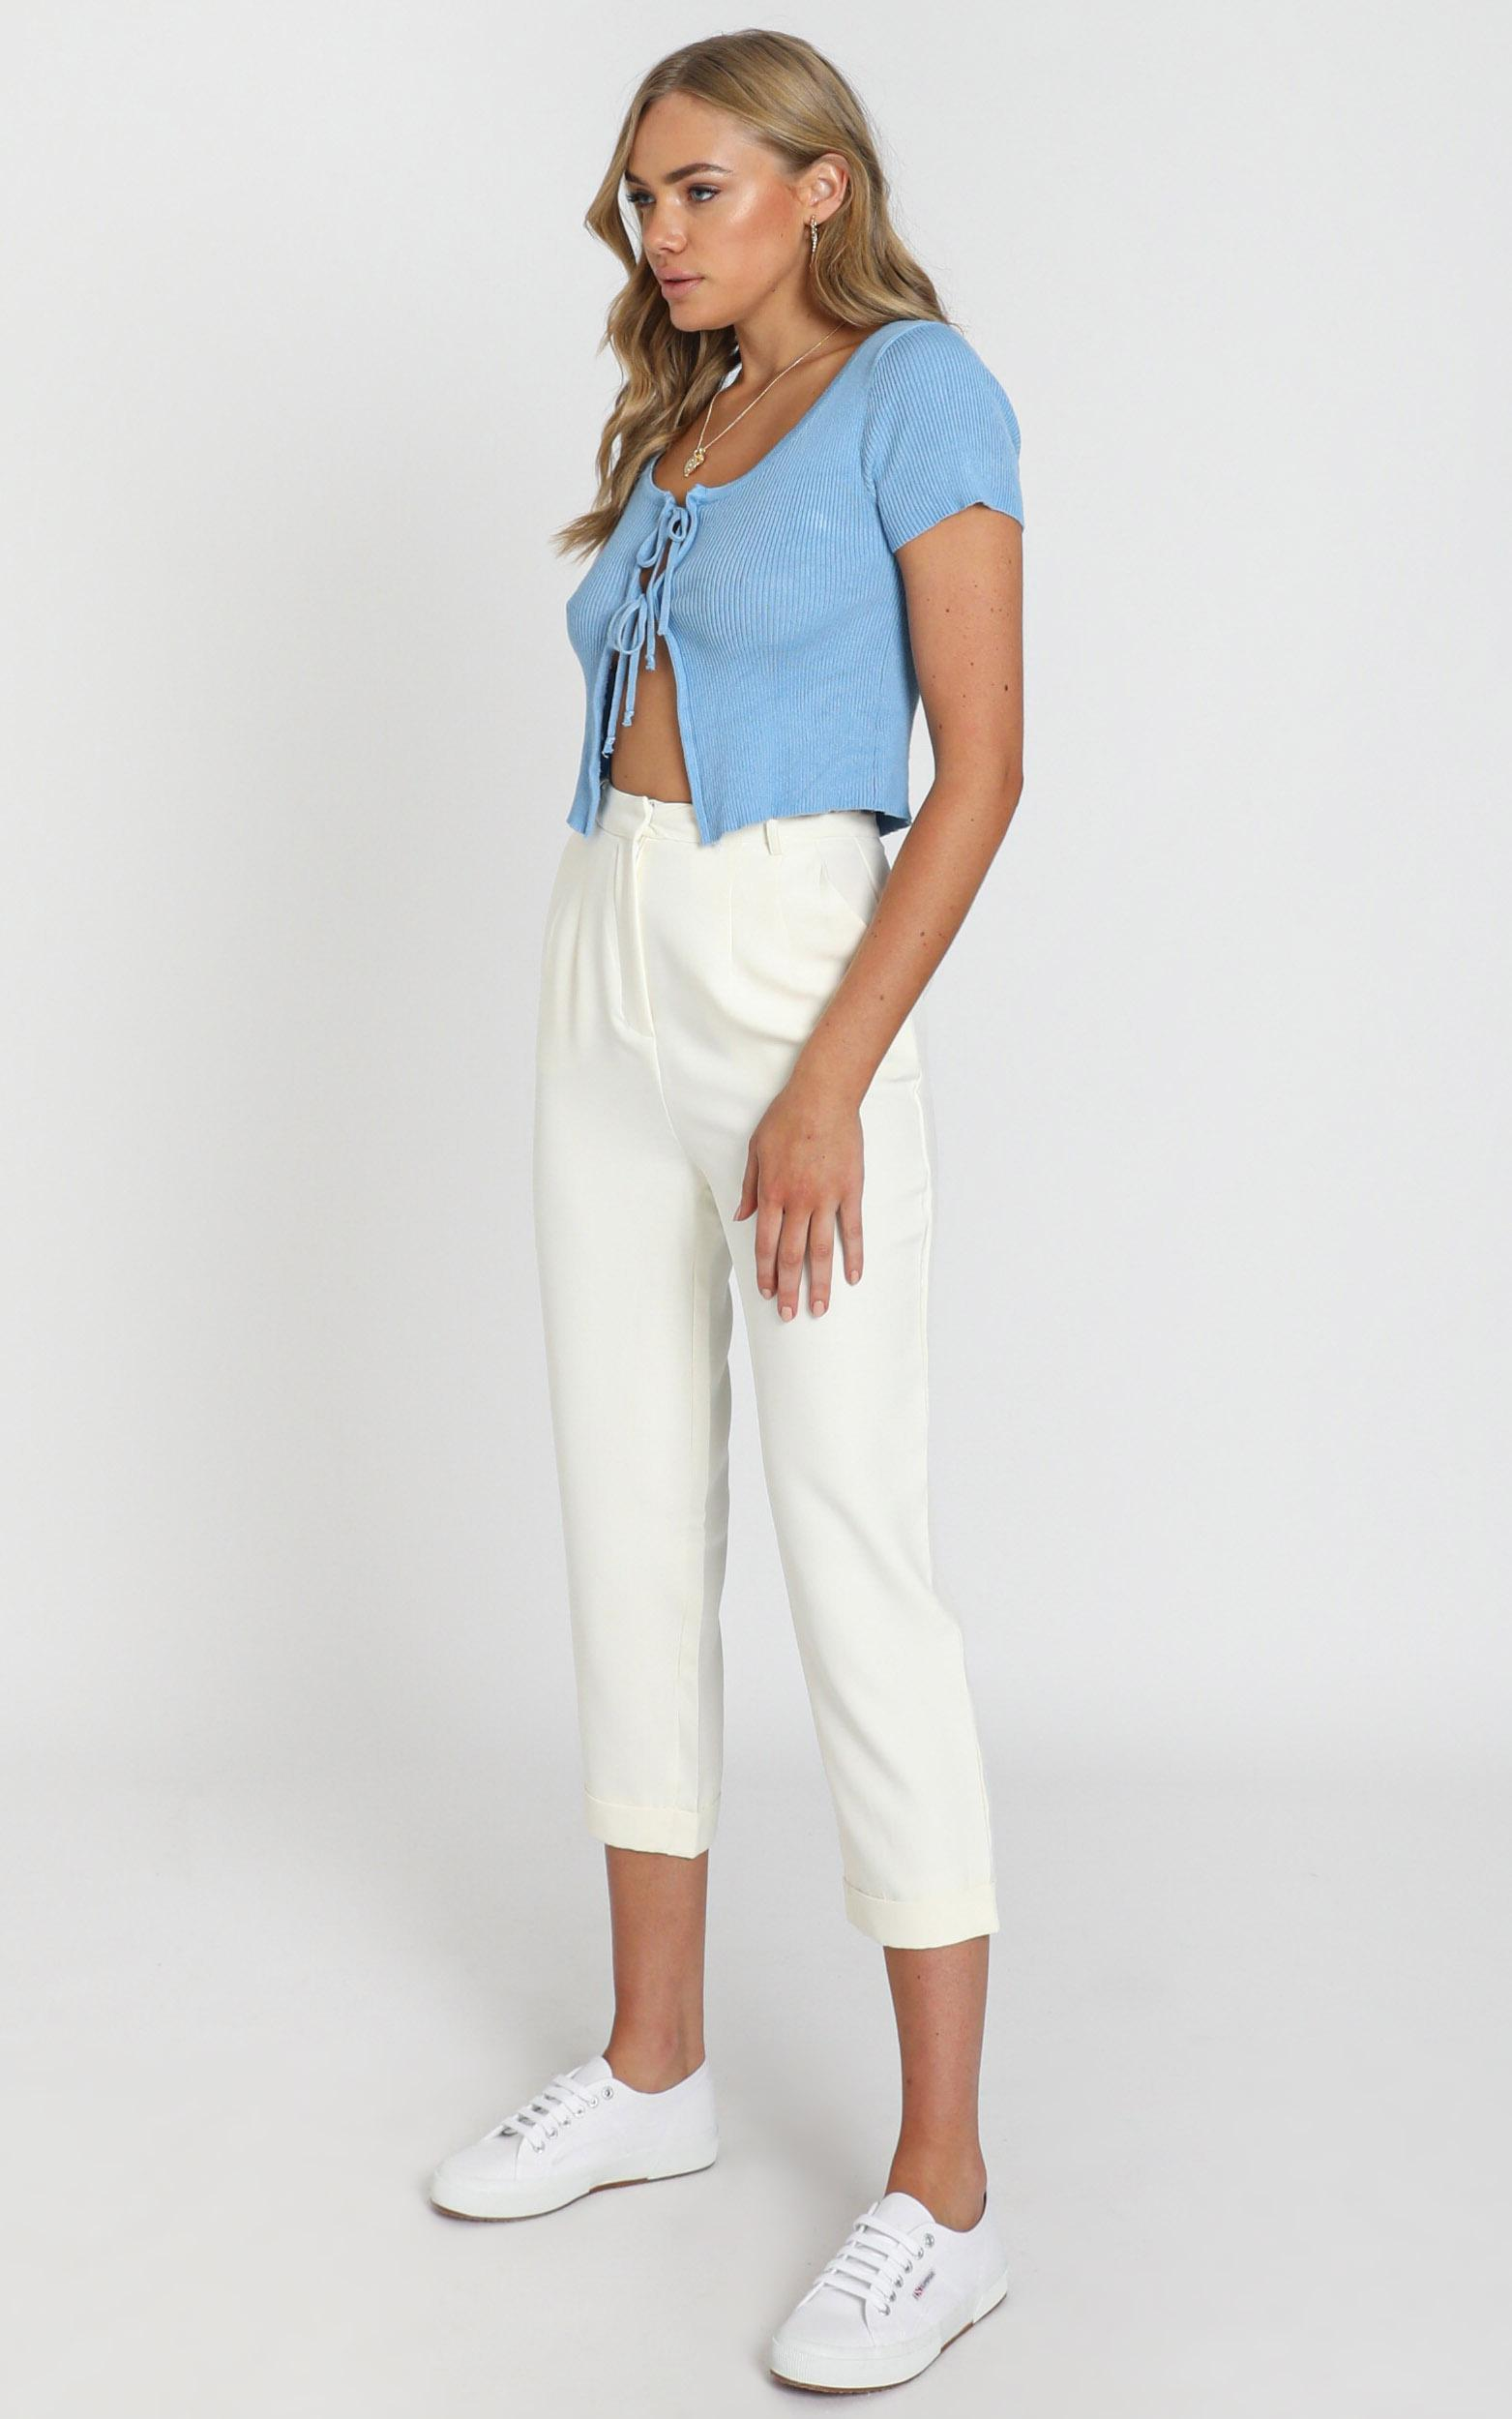 Keep It Safe Pants in cream - 20 (XXXXL), Cream, hi-res image number null